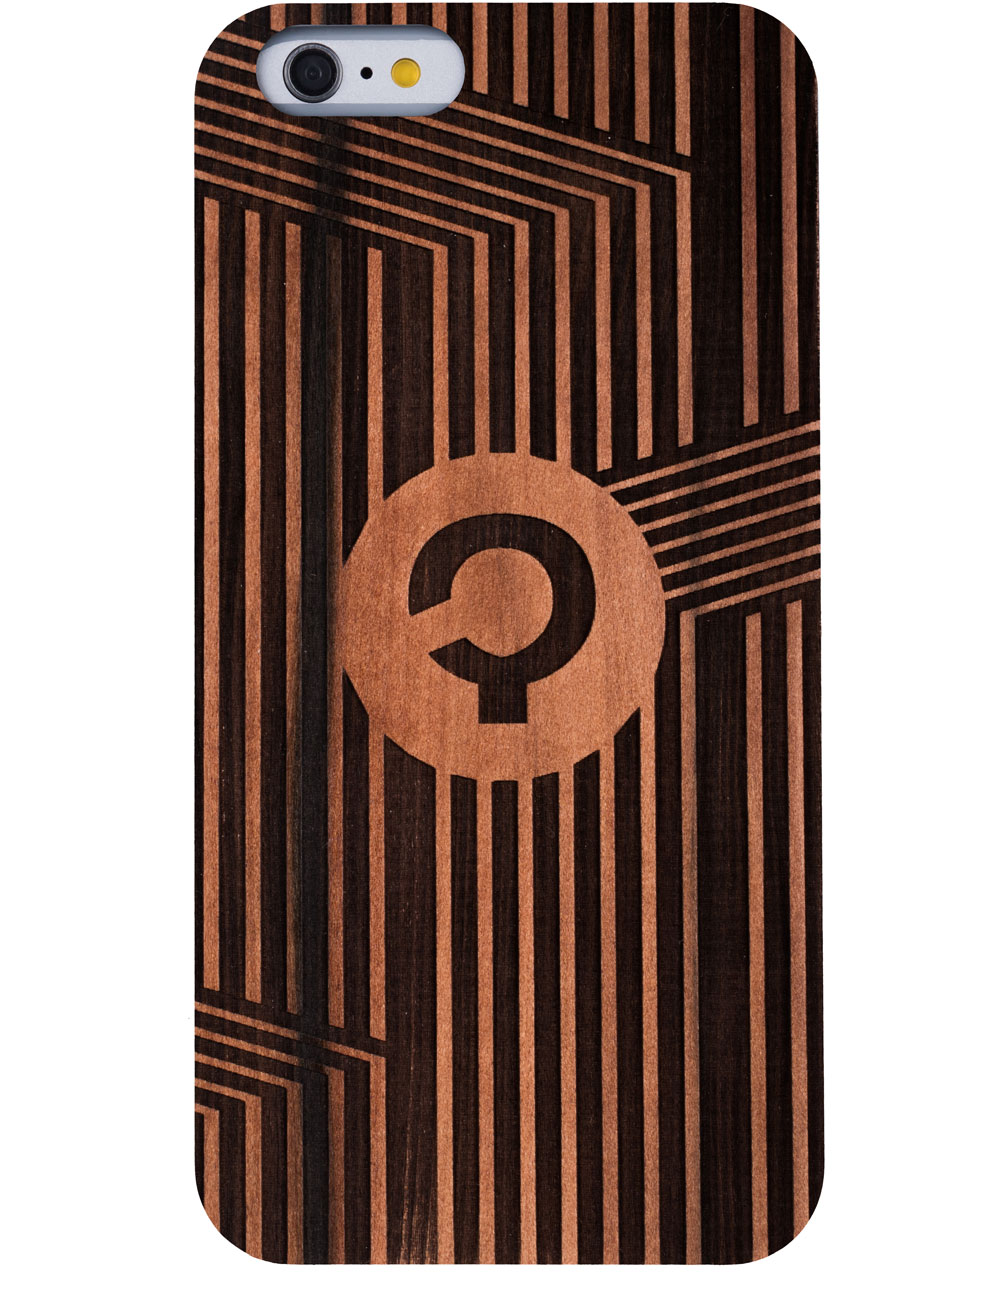 Wooden-case-iPhone-6-plus-Jablon-Vertical